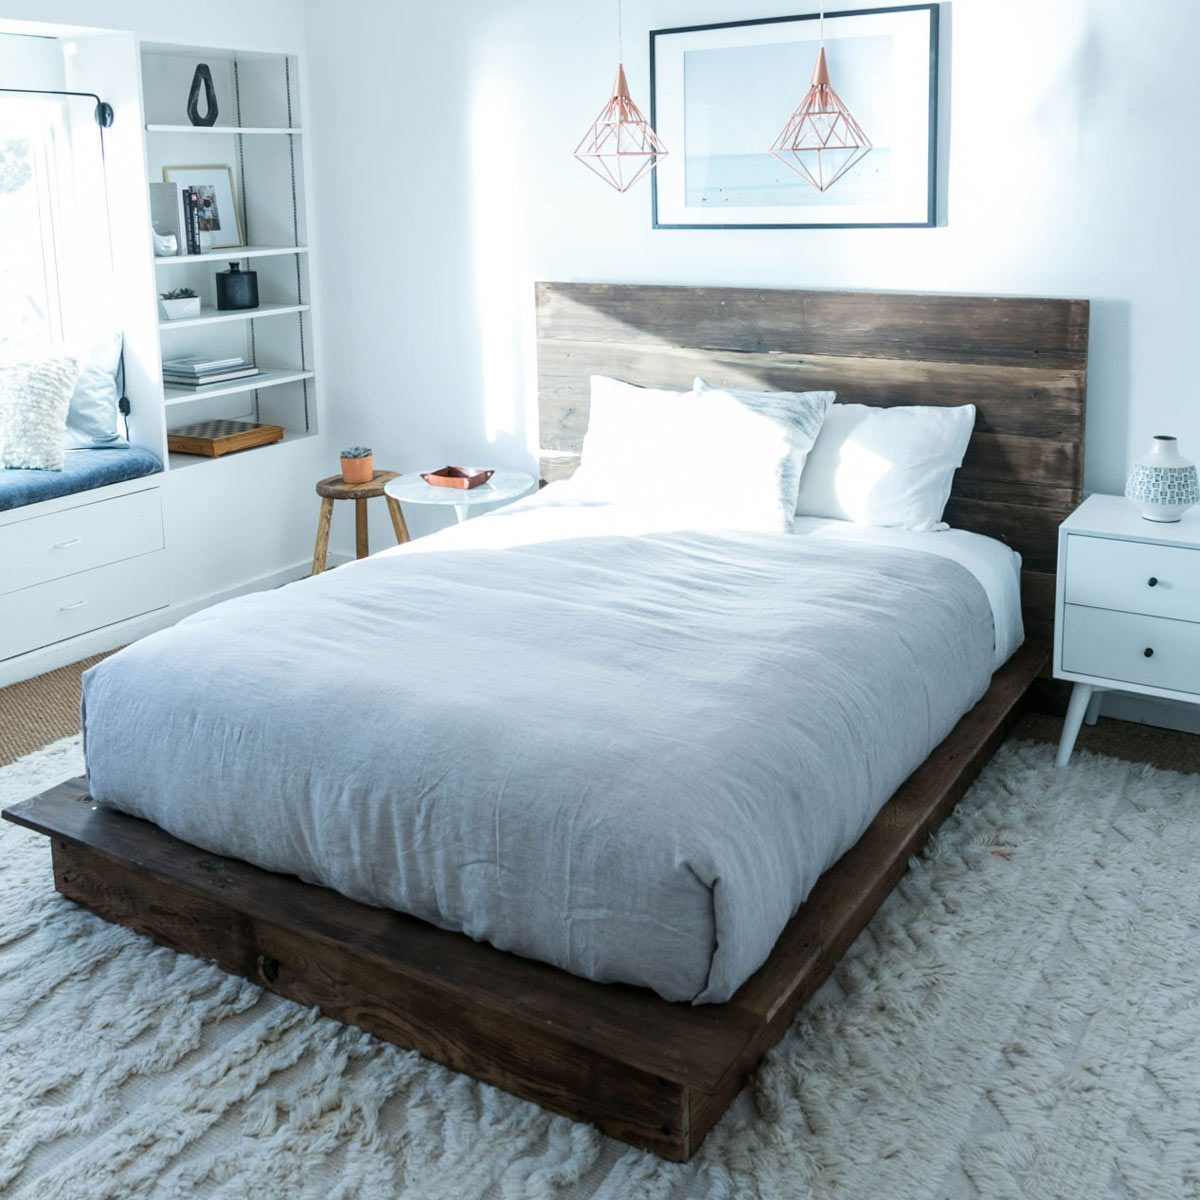 Awesome Beds: 10 Awesome DIY Platform Bed Designs